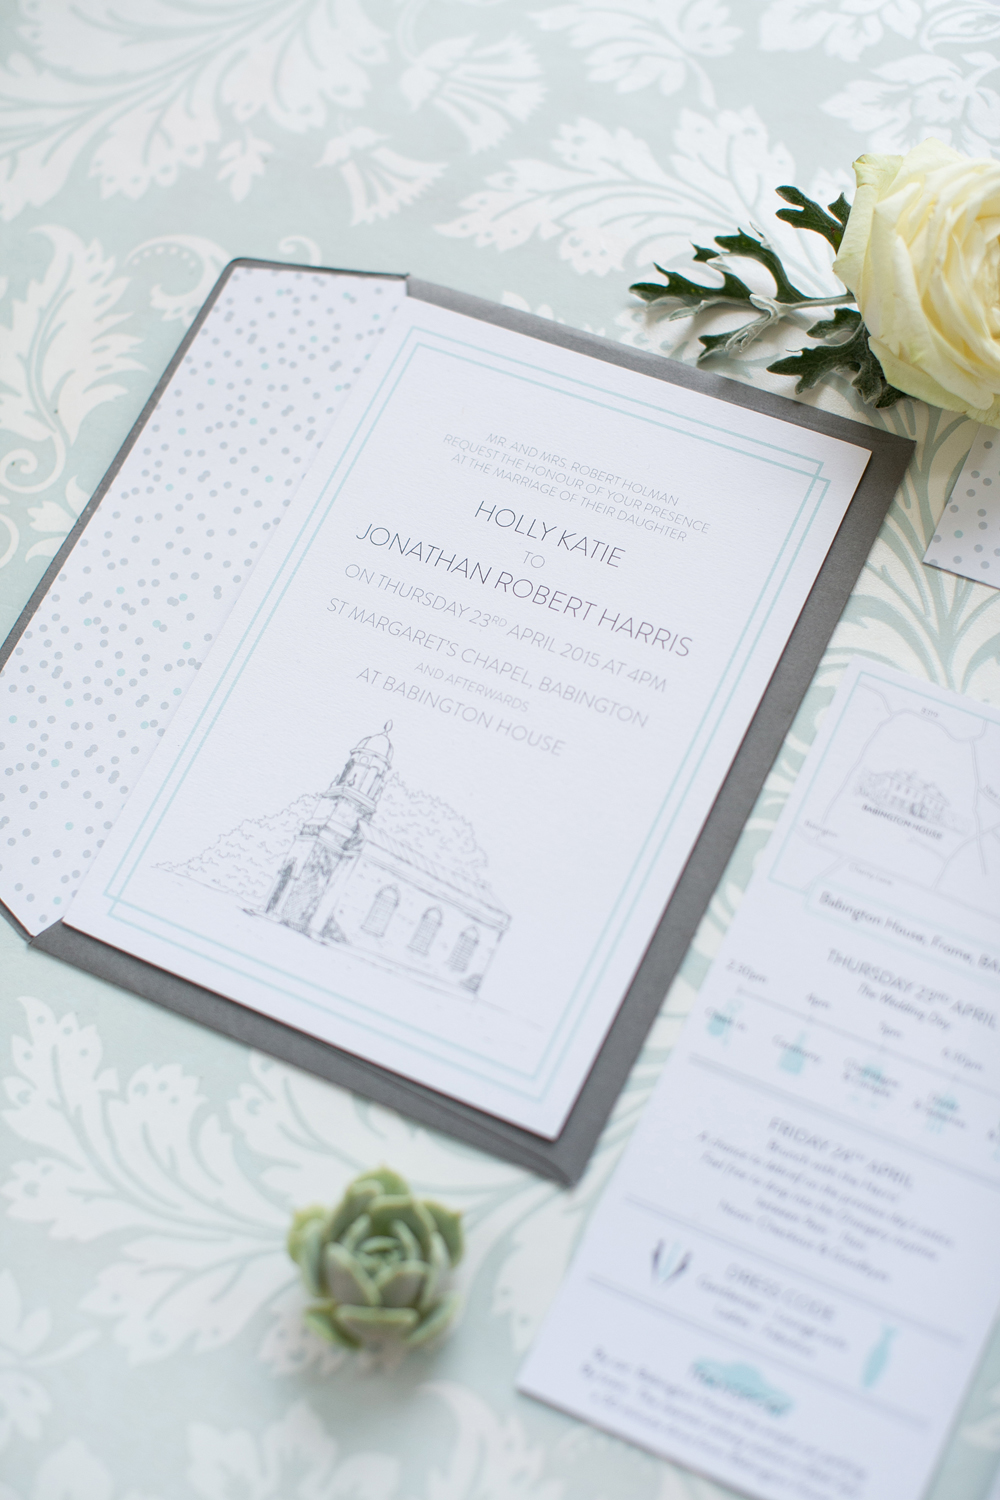 Babington House, bespoke wedding stationery, invitation, RSVP, information, map, confetti, mint and grey, Save the Date